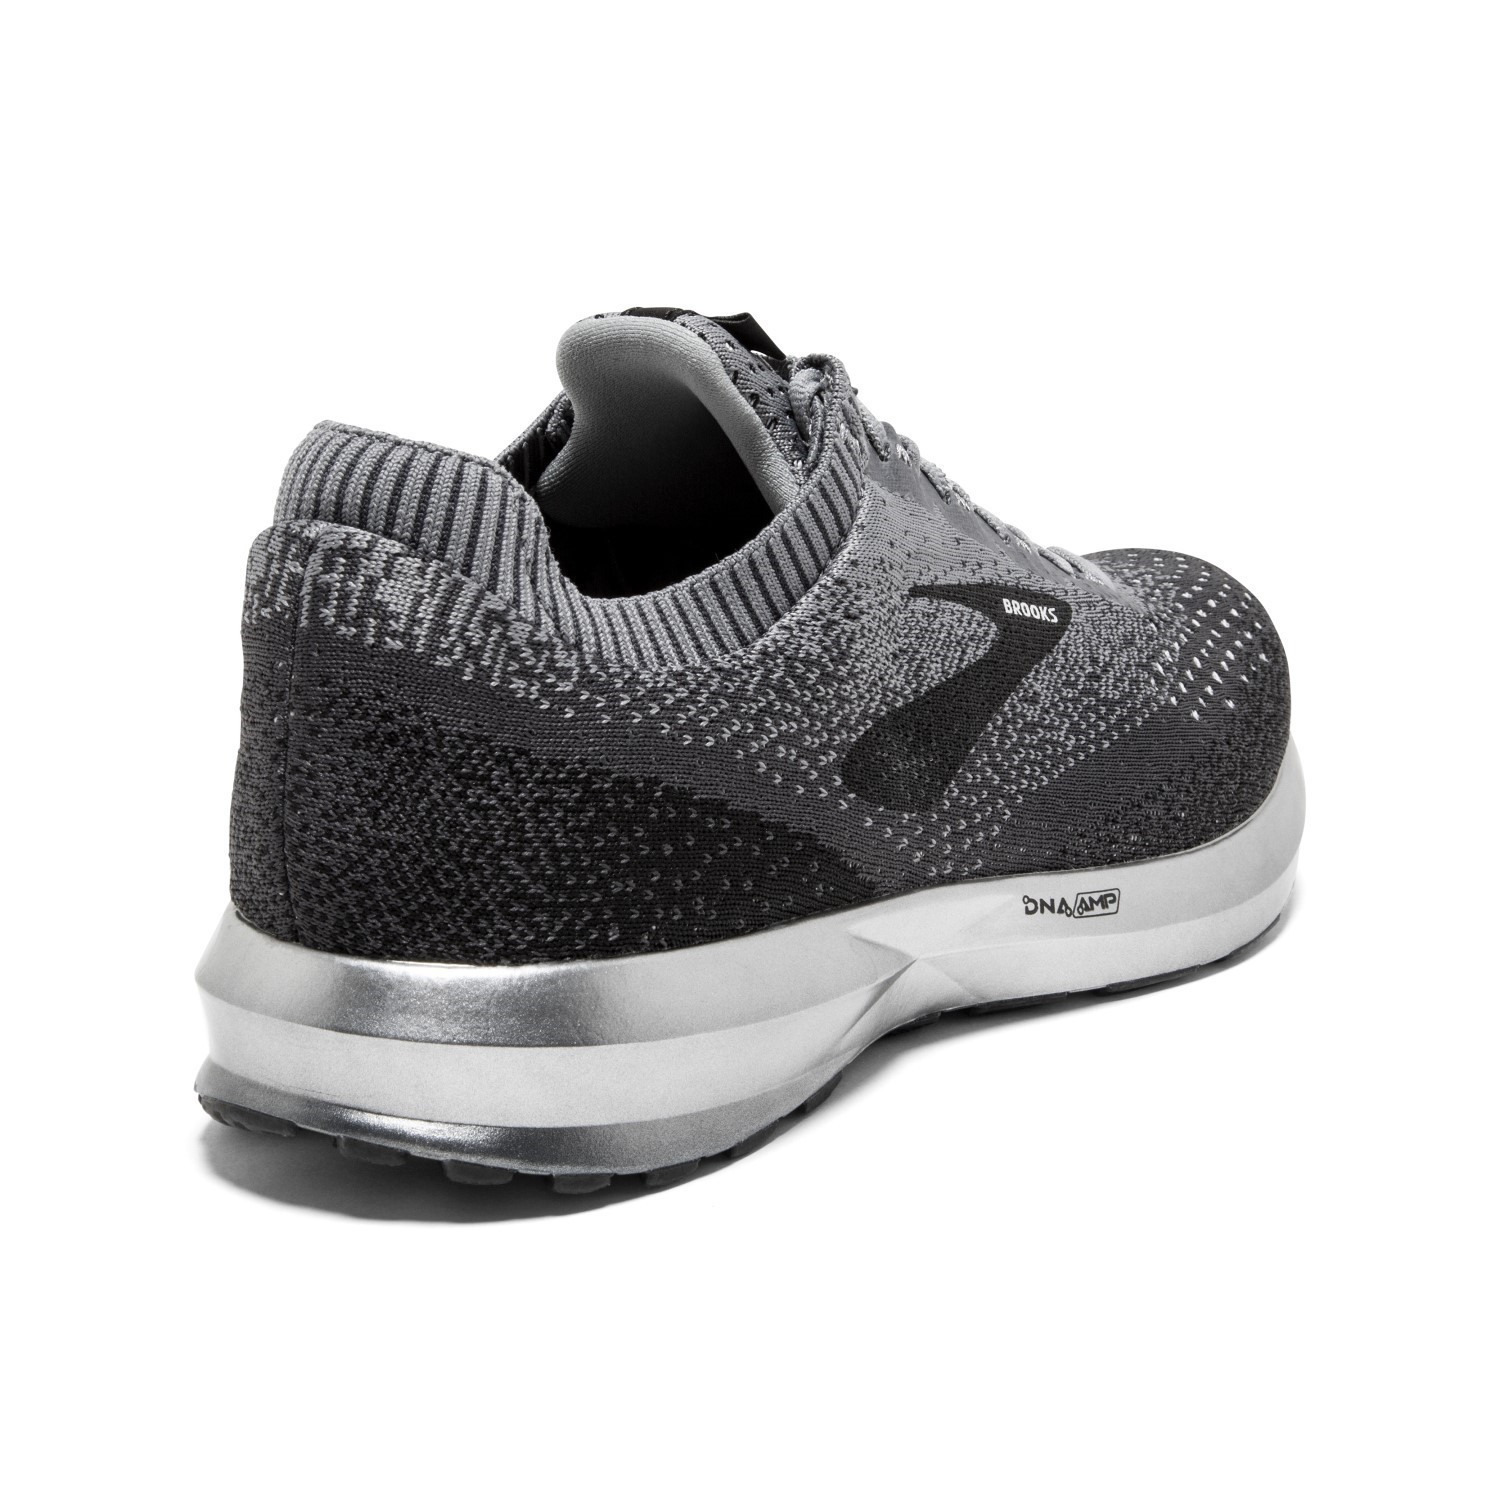 10aabd975c0 Brooks Levitate 2 - Mens Running Shoes - Black Grey Ebony